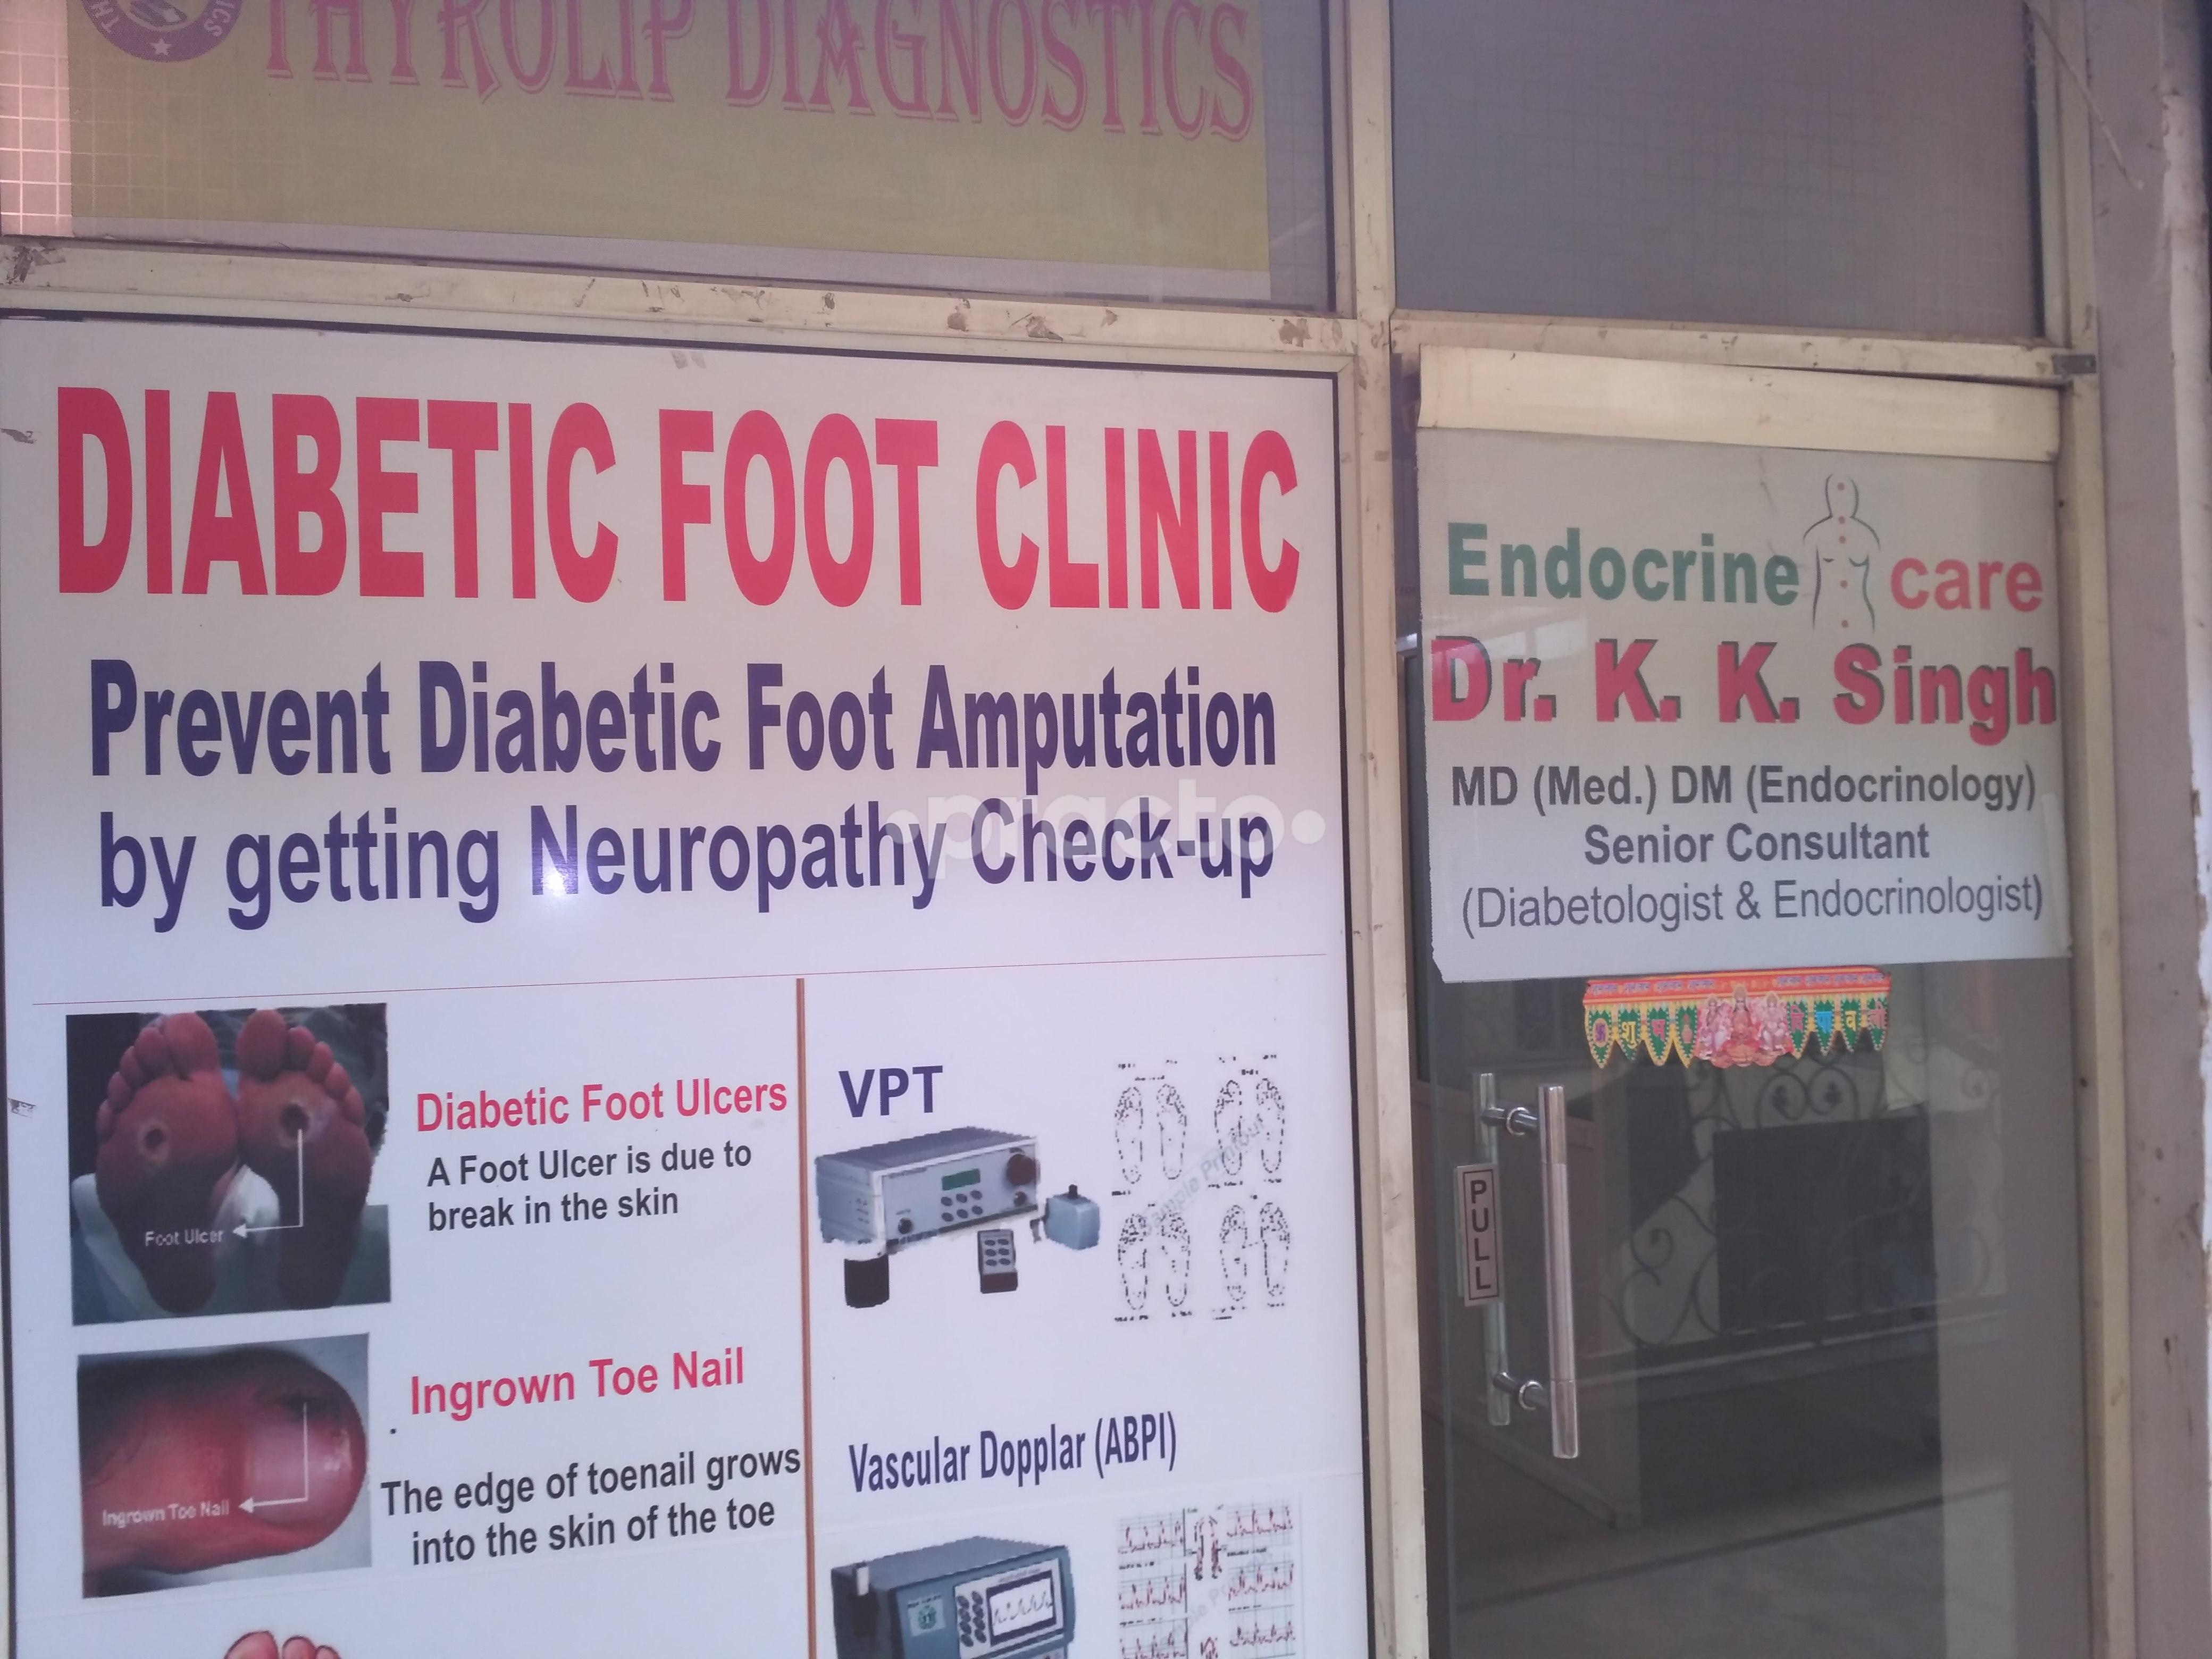 Endocrinologists In Noida - Instant Appointment Booking, View Fees